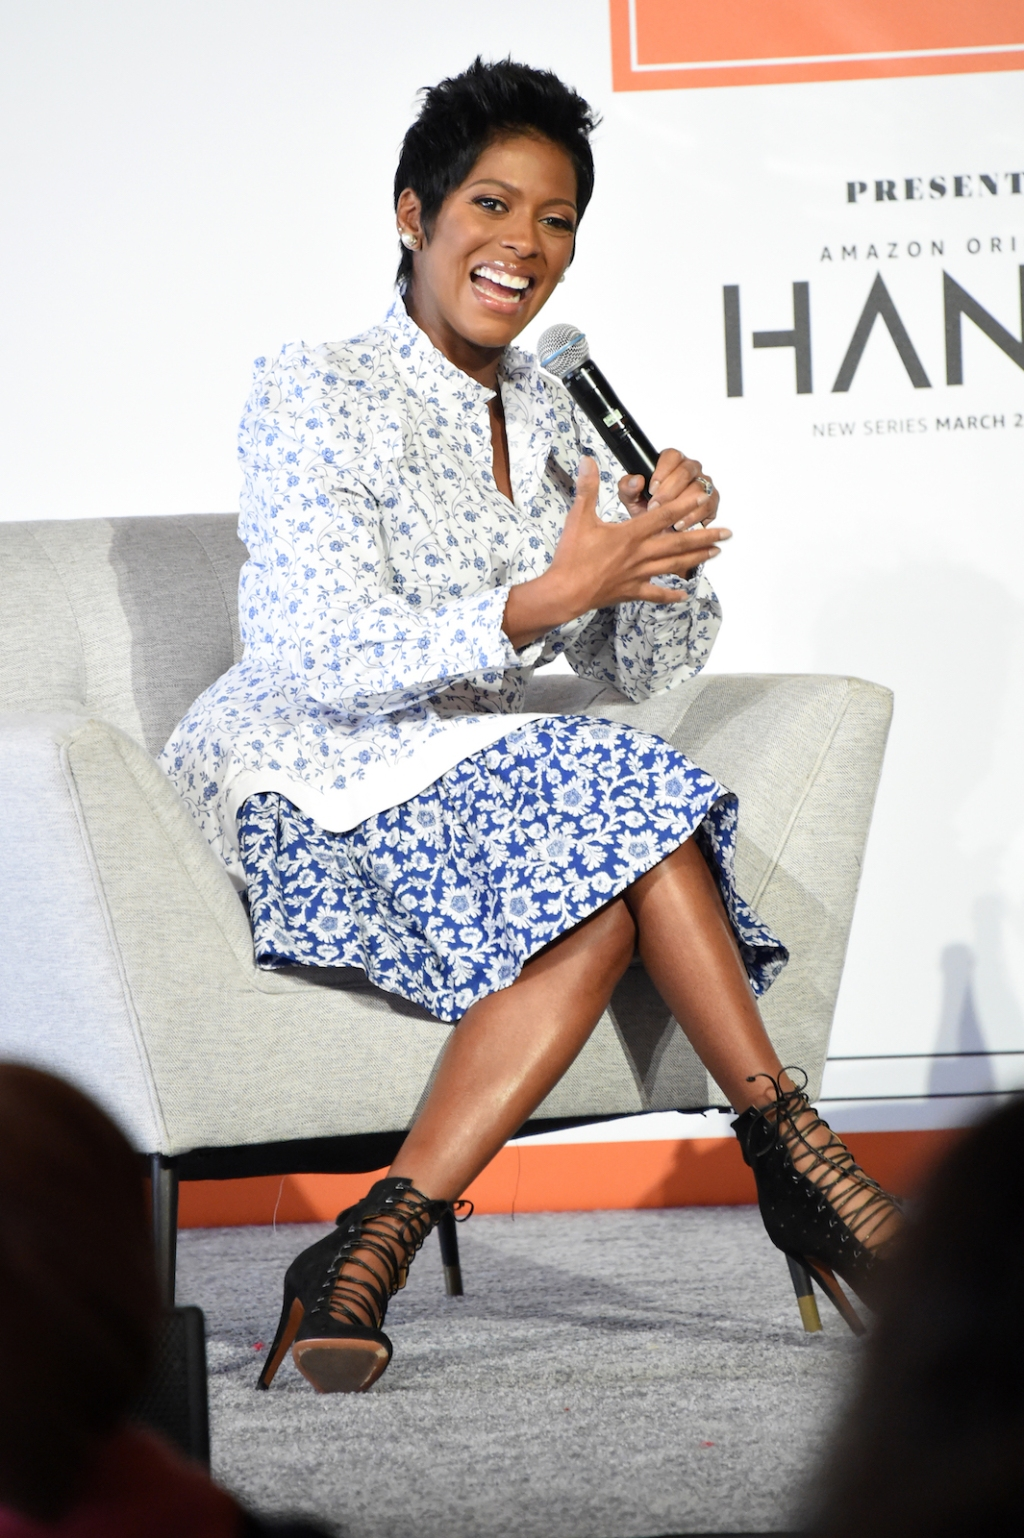 TV host Tamron Hall dives deep into her personal experience as an African American female in television.